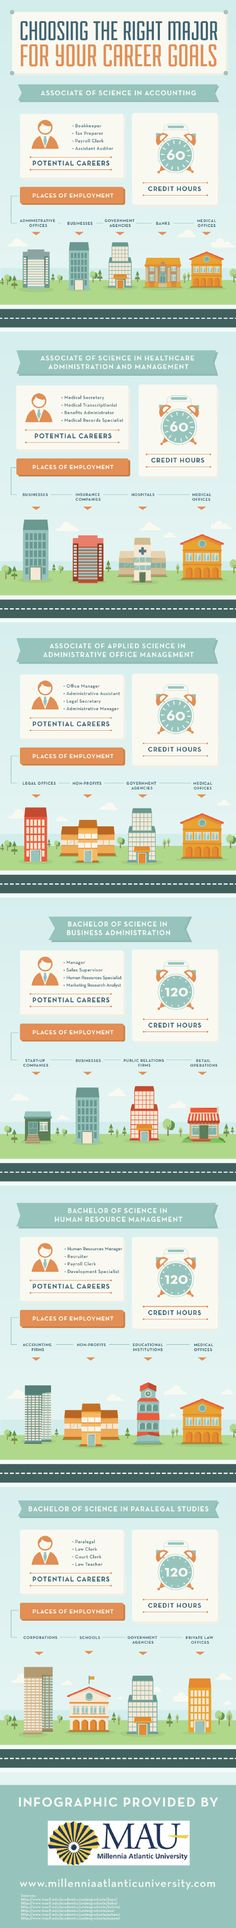 Students interested in becoming managers, sales supervisors, or human resources specialists should enroll in a Bachelor of Science in Business Administration program. This infographic from a Miami business school has more details about different majors. Career College, College Success, Student Success, College Life, Career Counseling, School Counselor, Graduate Recruitment, Choosing A Major, Bachelor Program